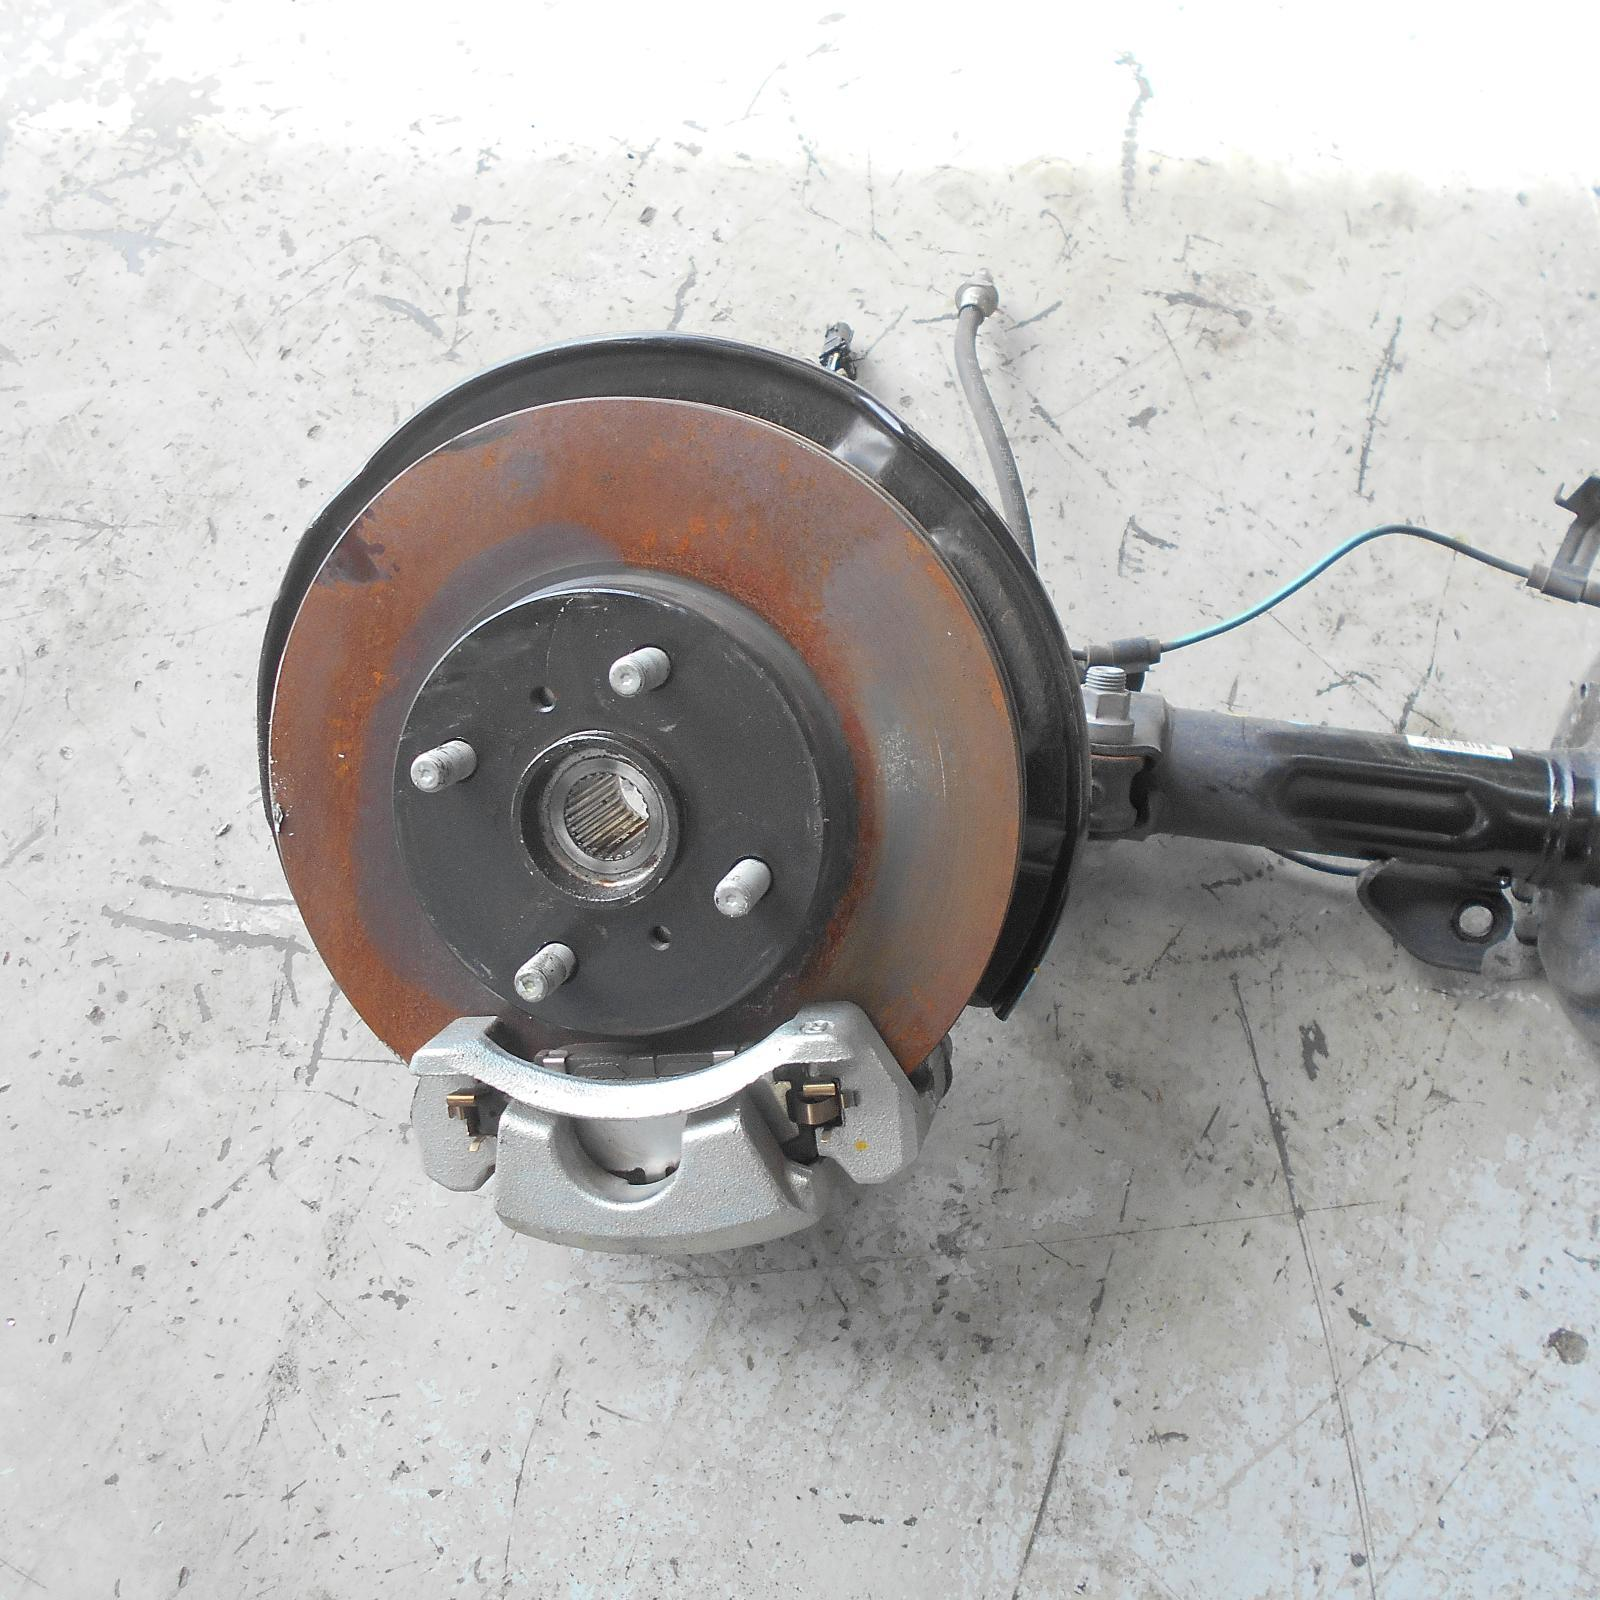 TOYOTA YARIS, Right Front Hub Assembly, NCP9#-NCP13#, 10/05-